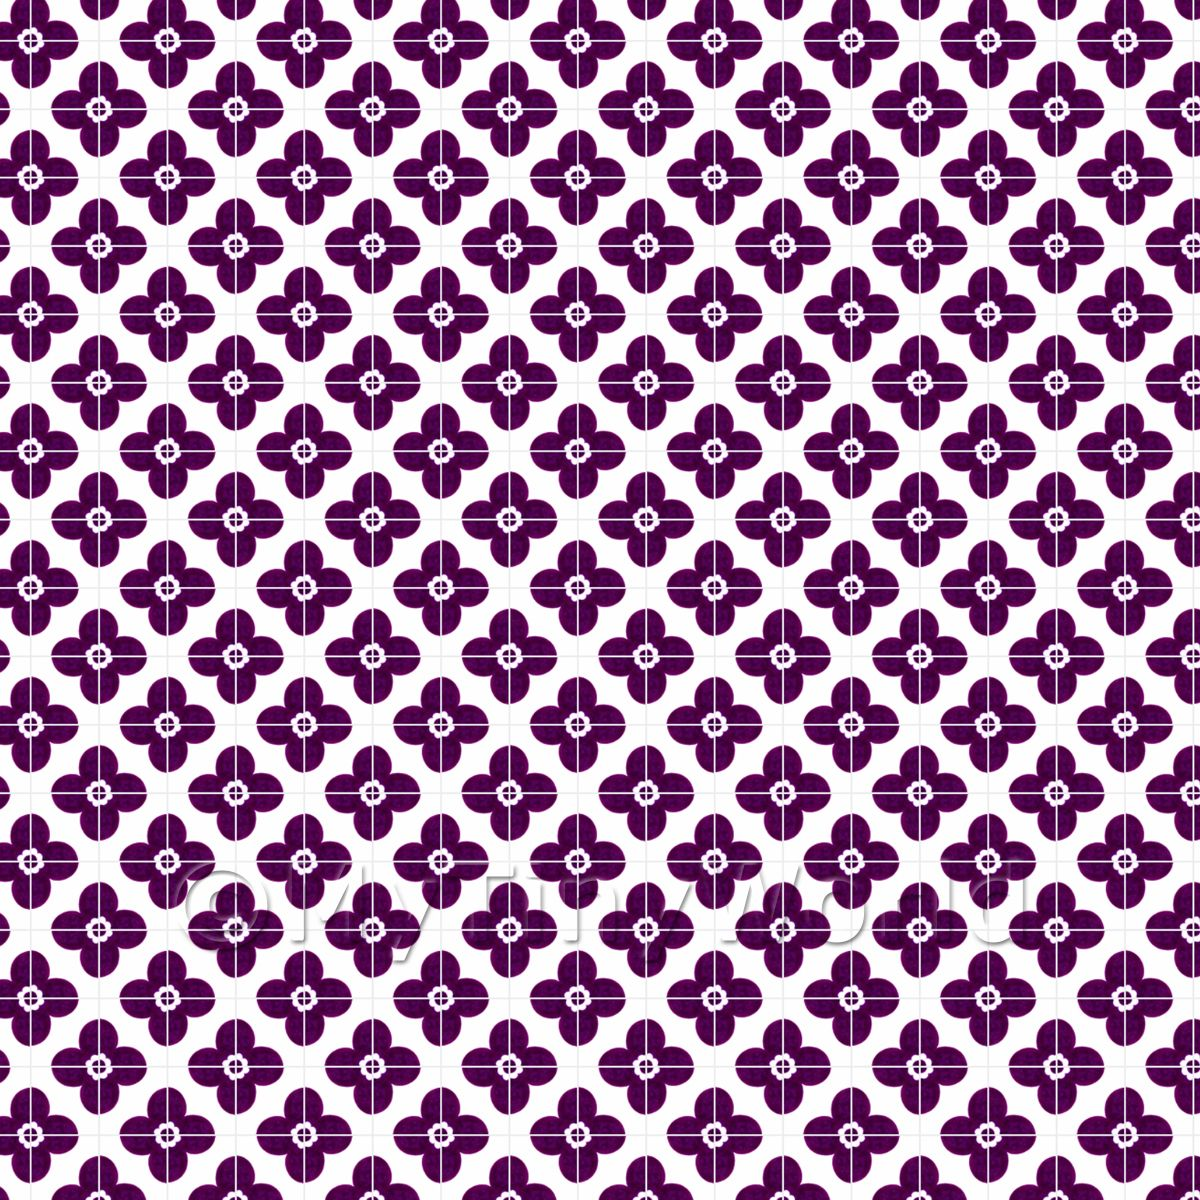 1:24th Purple Flower Design Tile Sheet With Pale Grey Grout